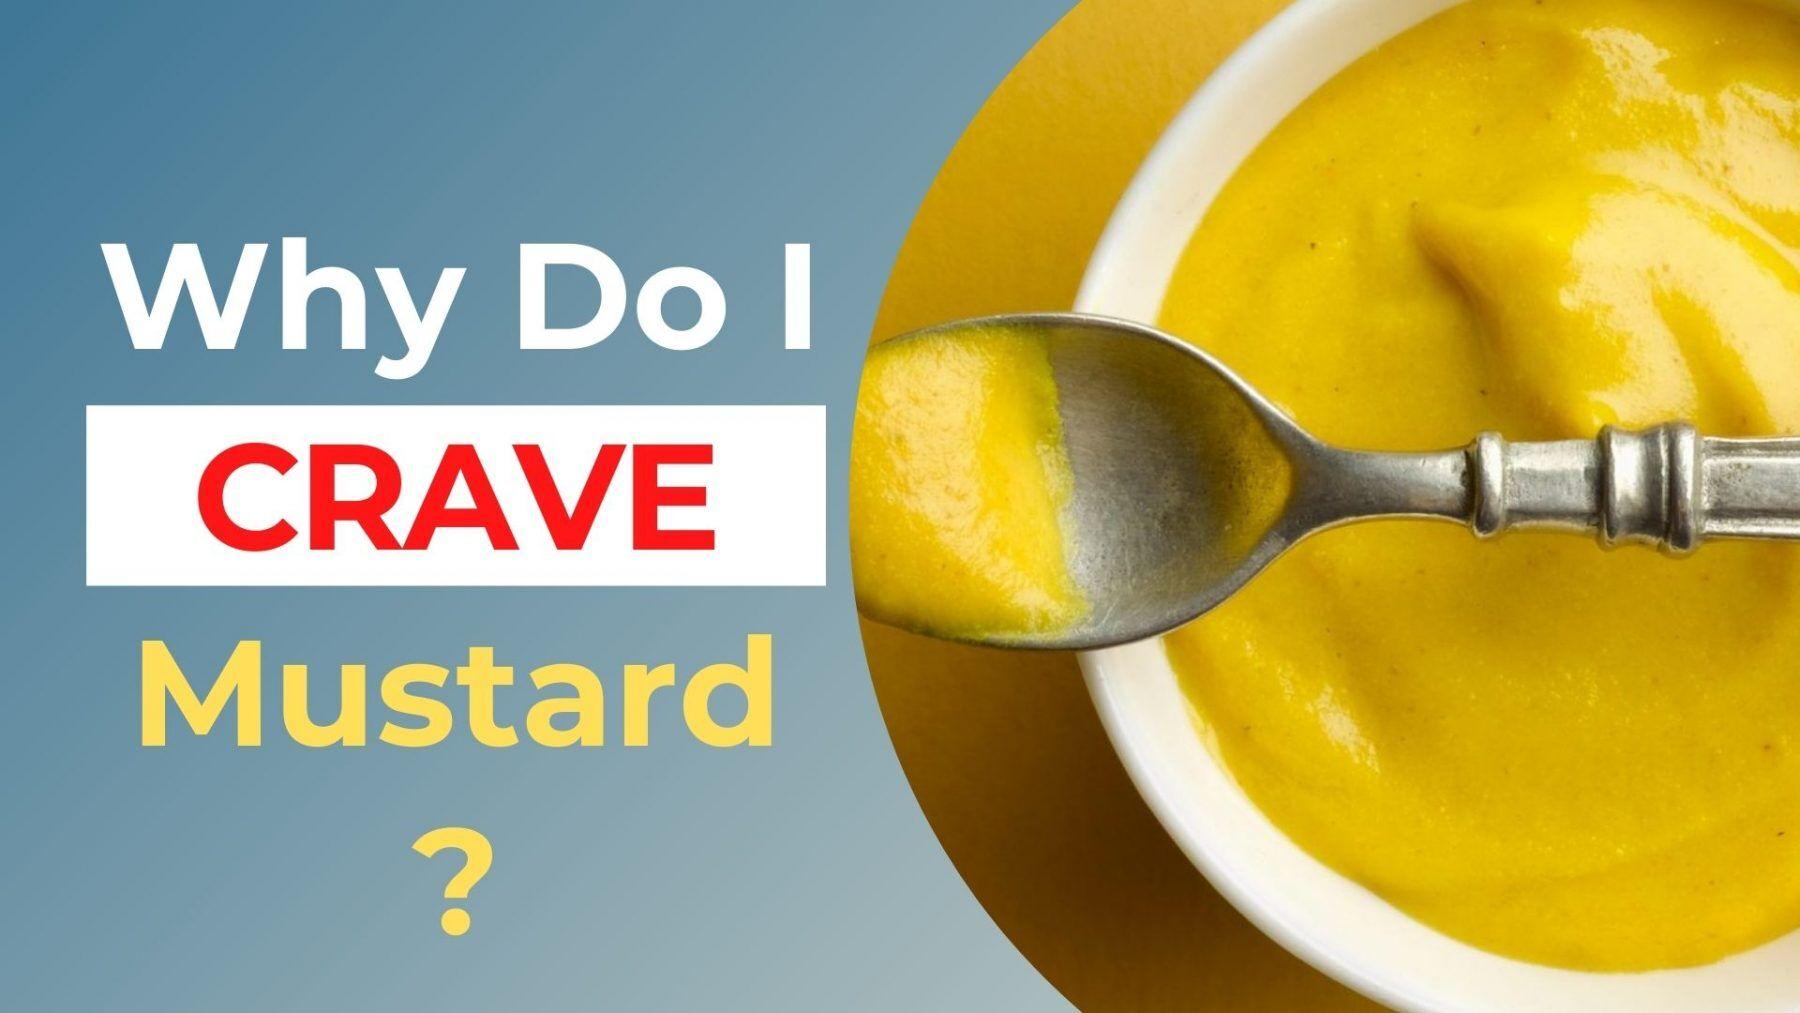 Why Do I Crave mustard